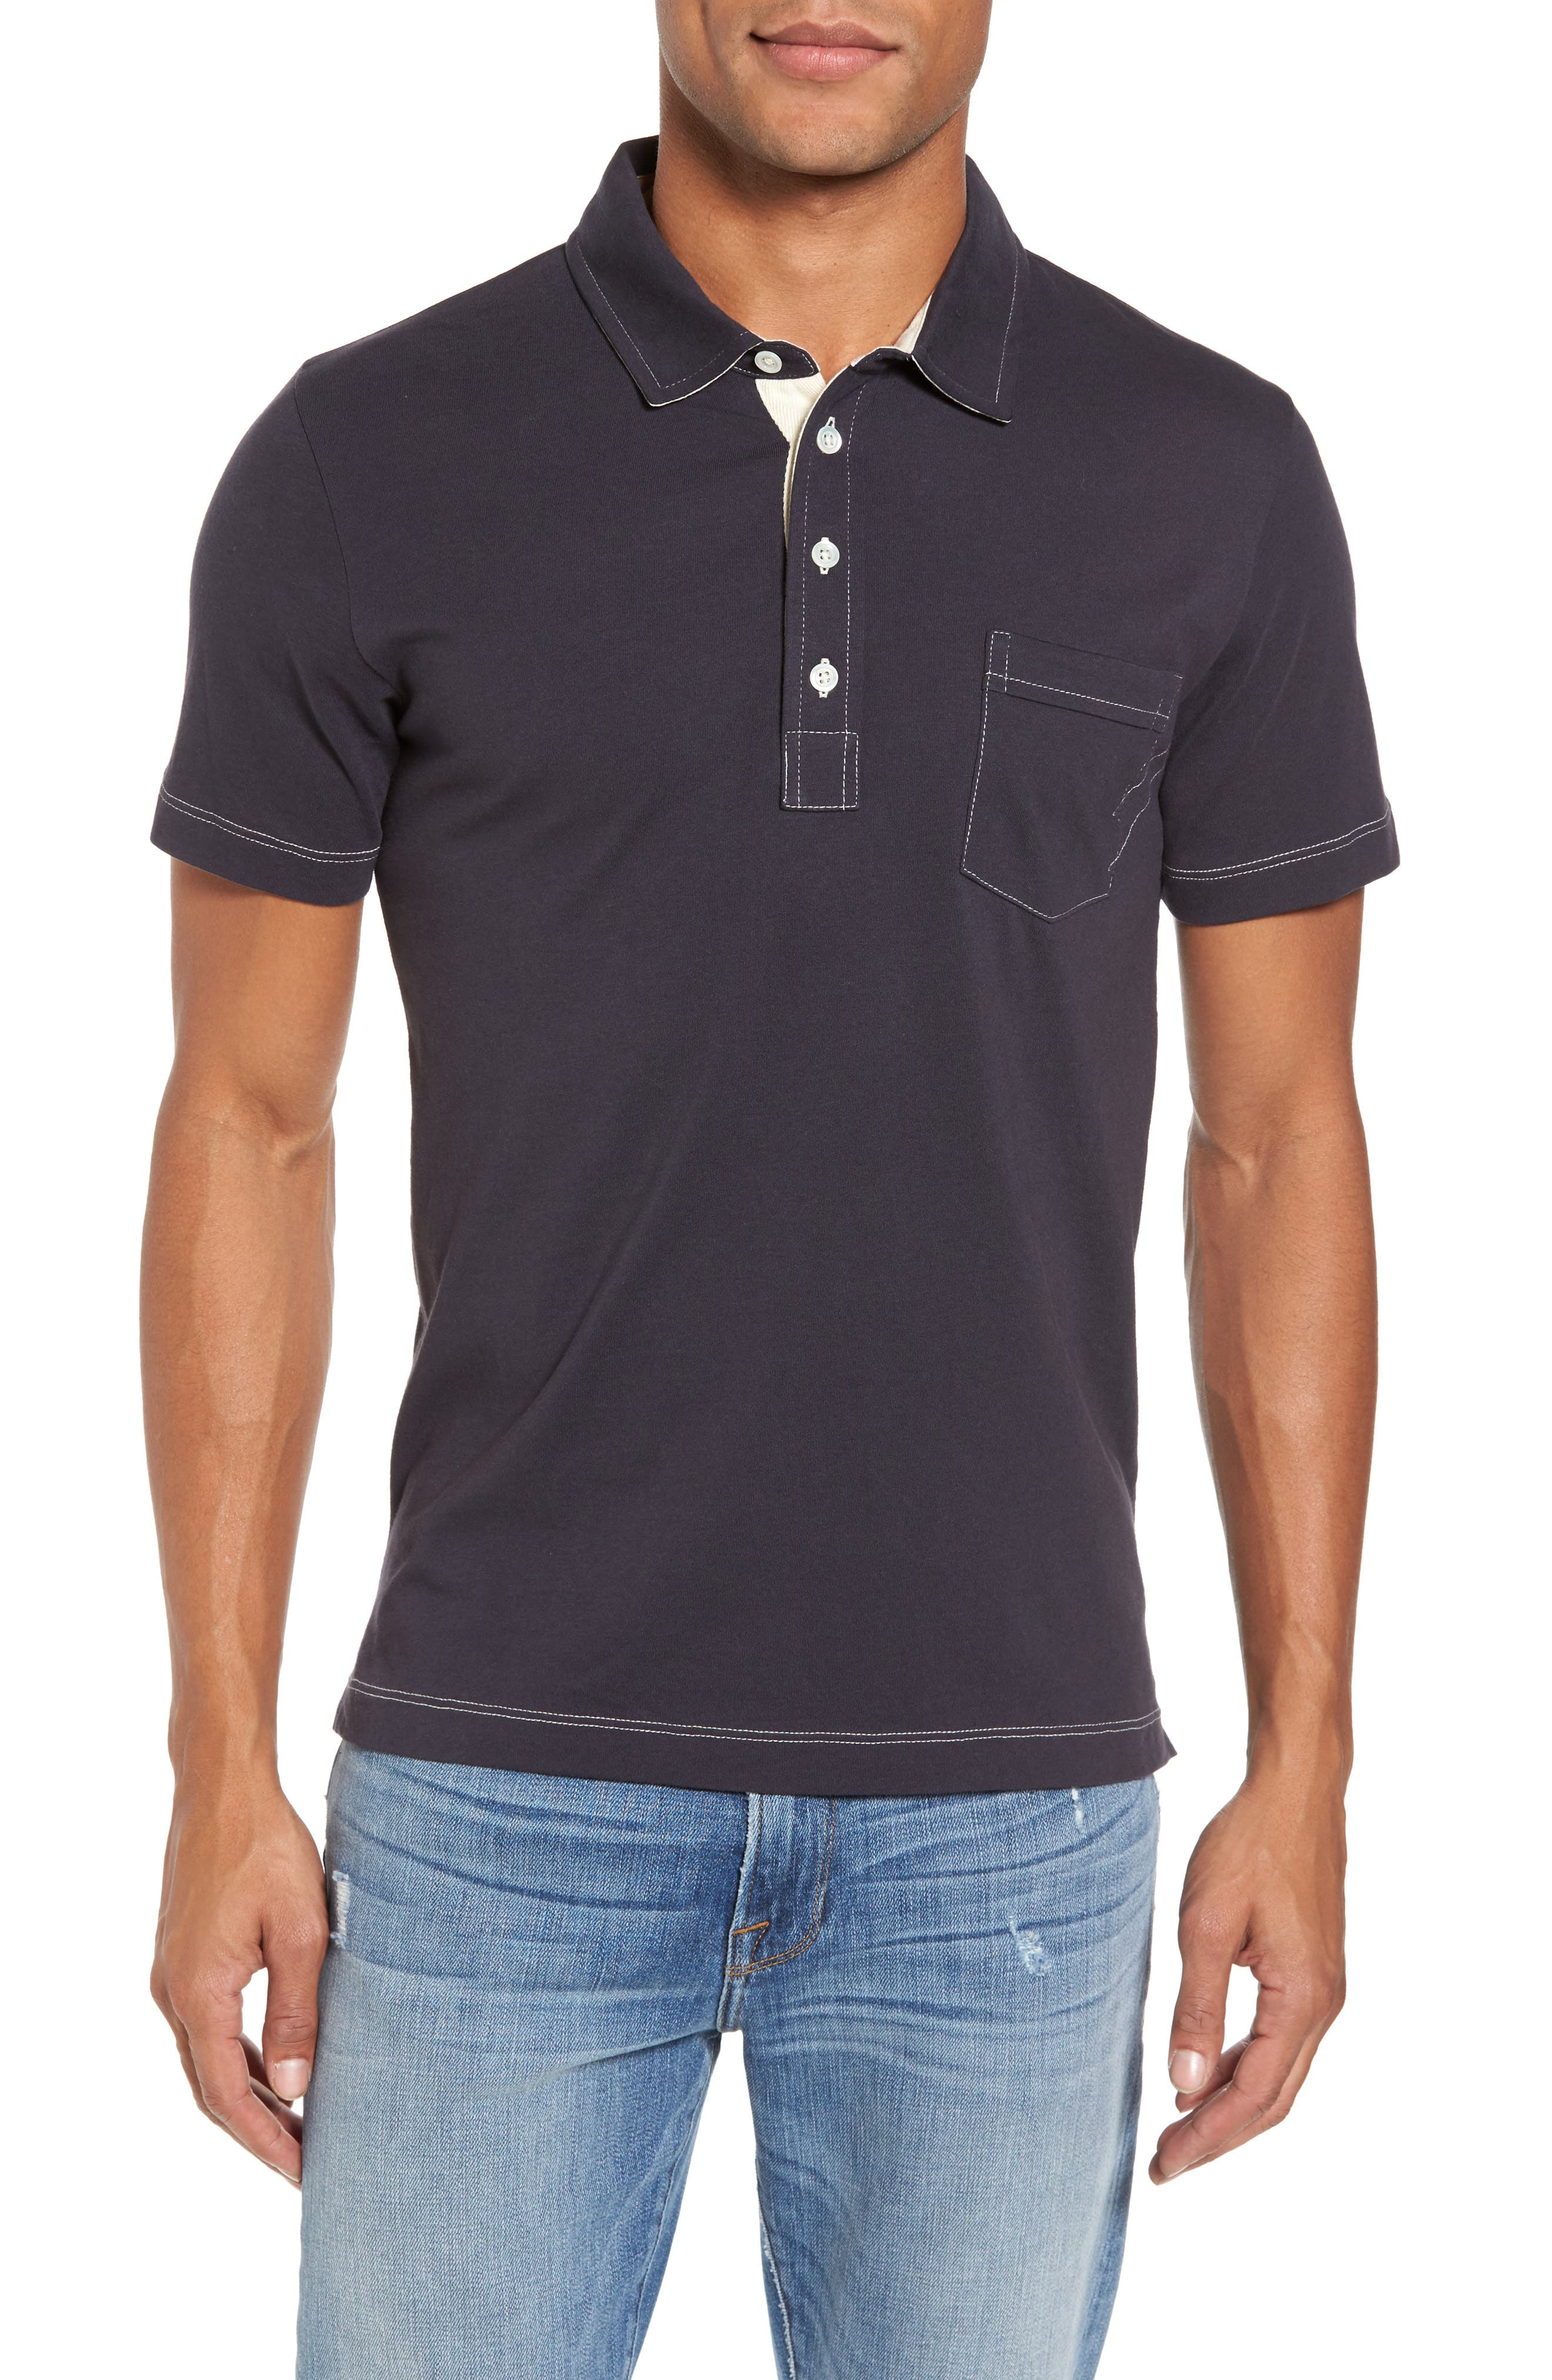 Pensacola Slim Fit Polo,                         Main,                         color, Navy